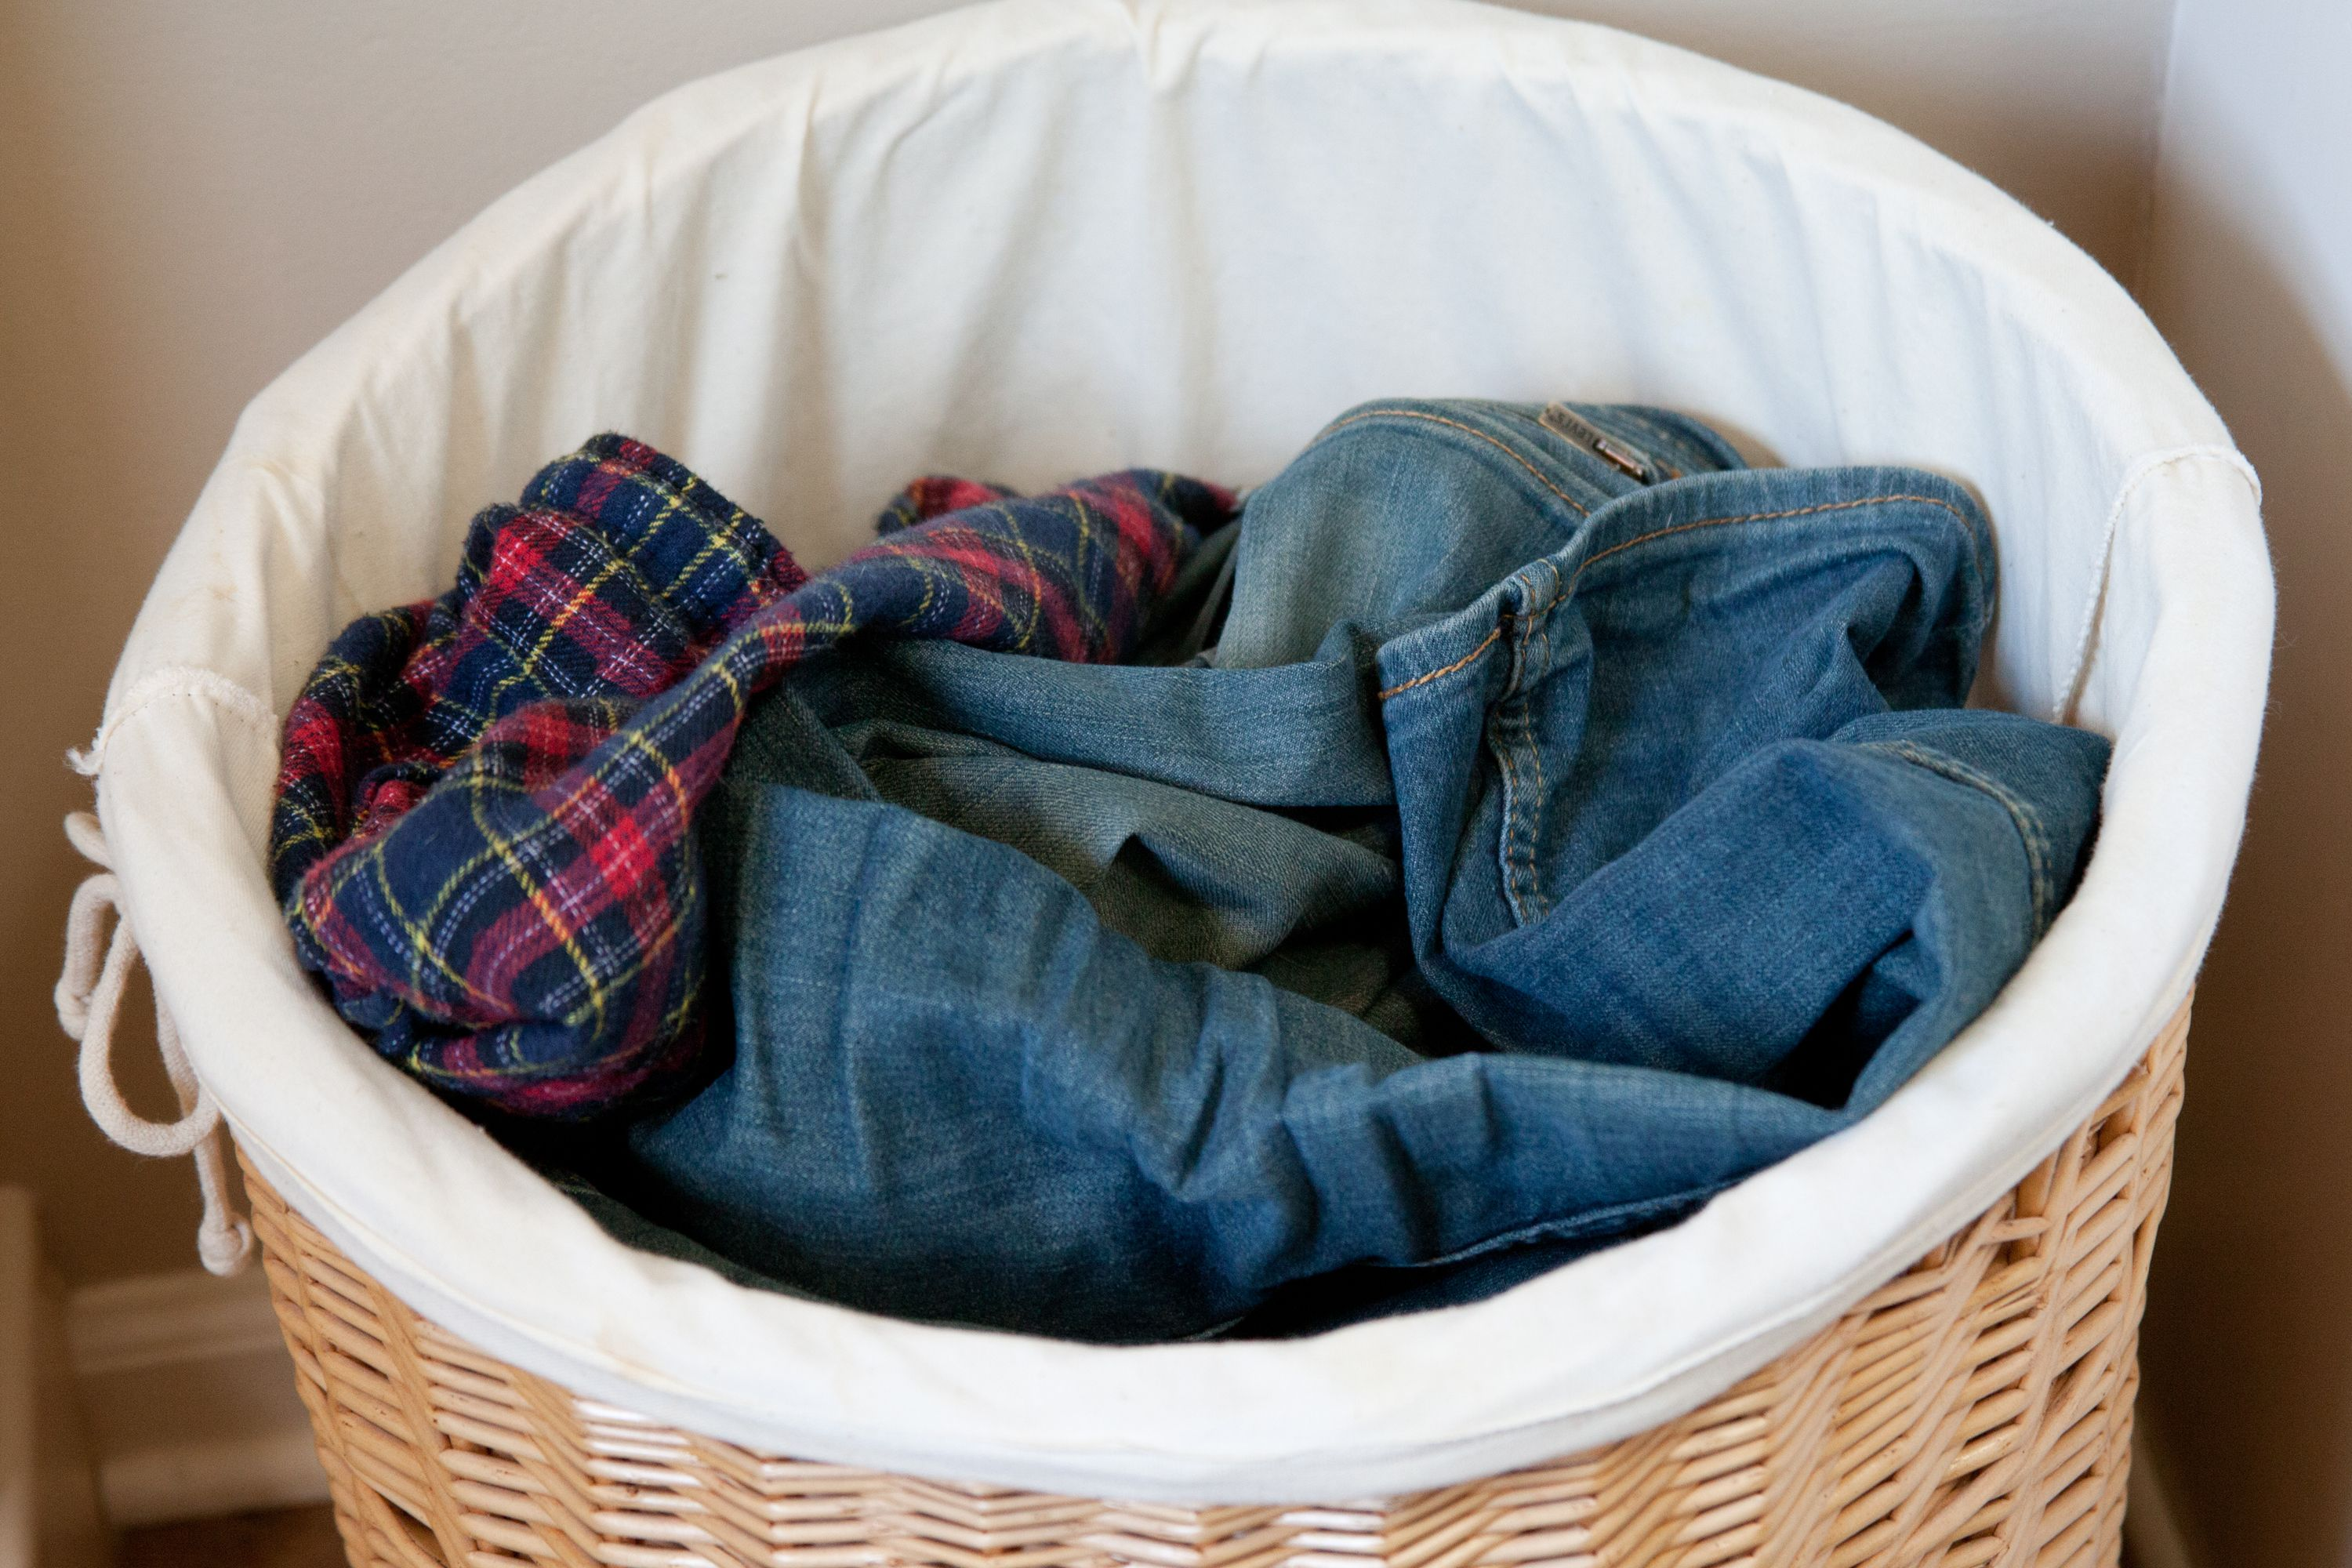 how to get turpentine smell out of washing machine